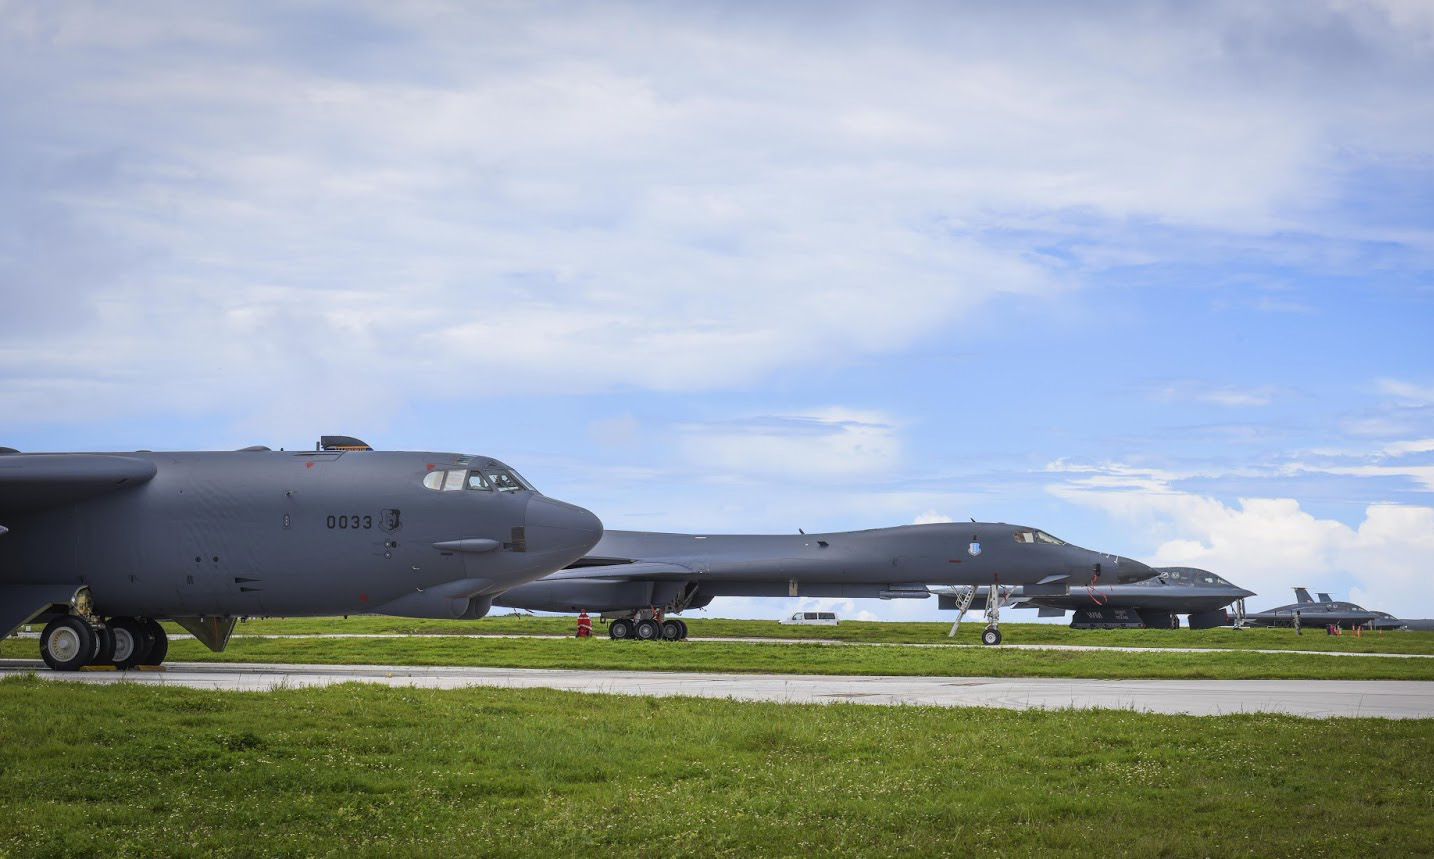 A-B-52-Stratofortress-B-1-Lancer-and-B-2